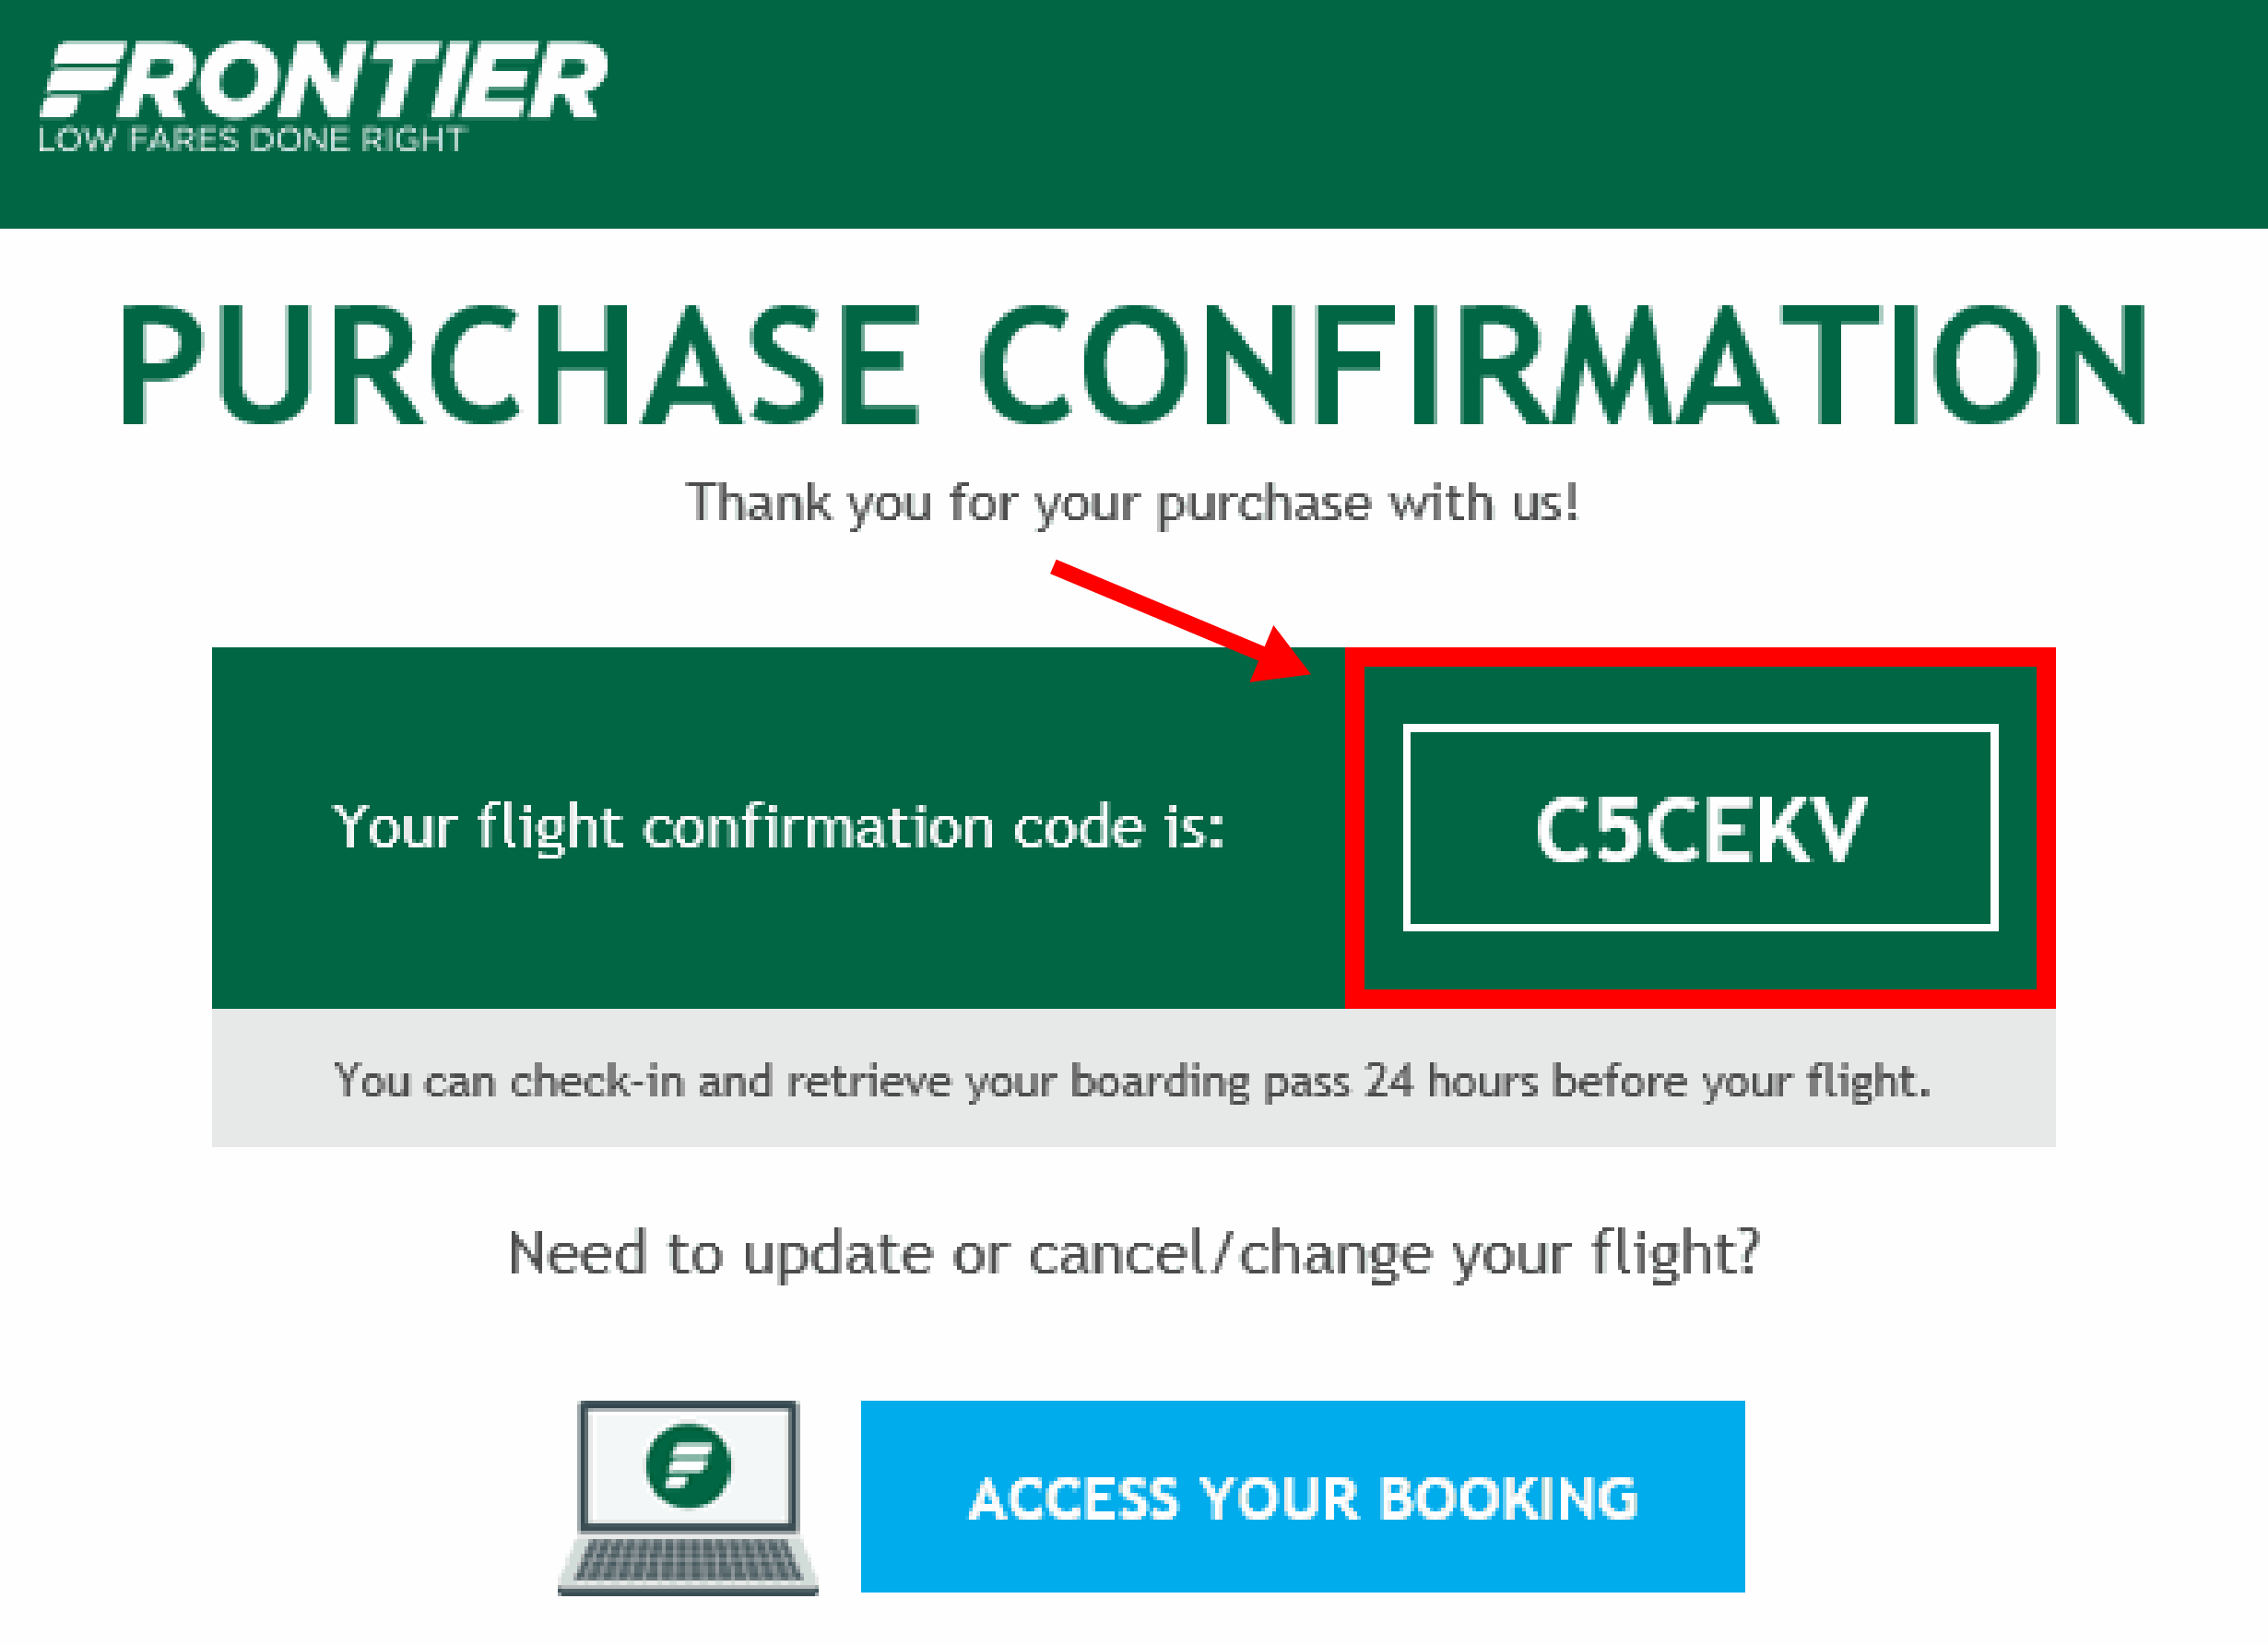 Frontier confirmation email example